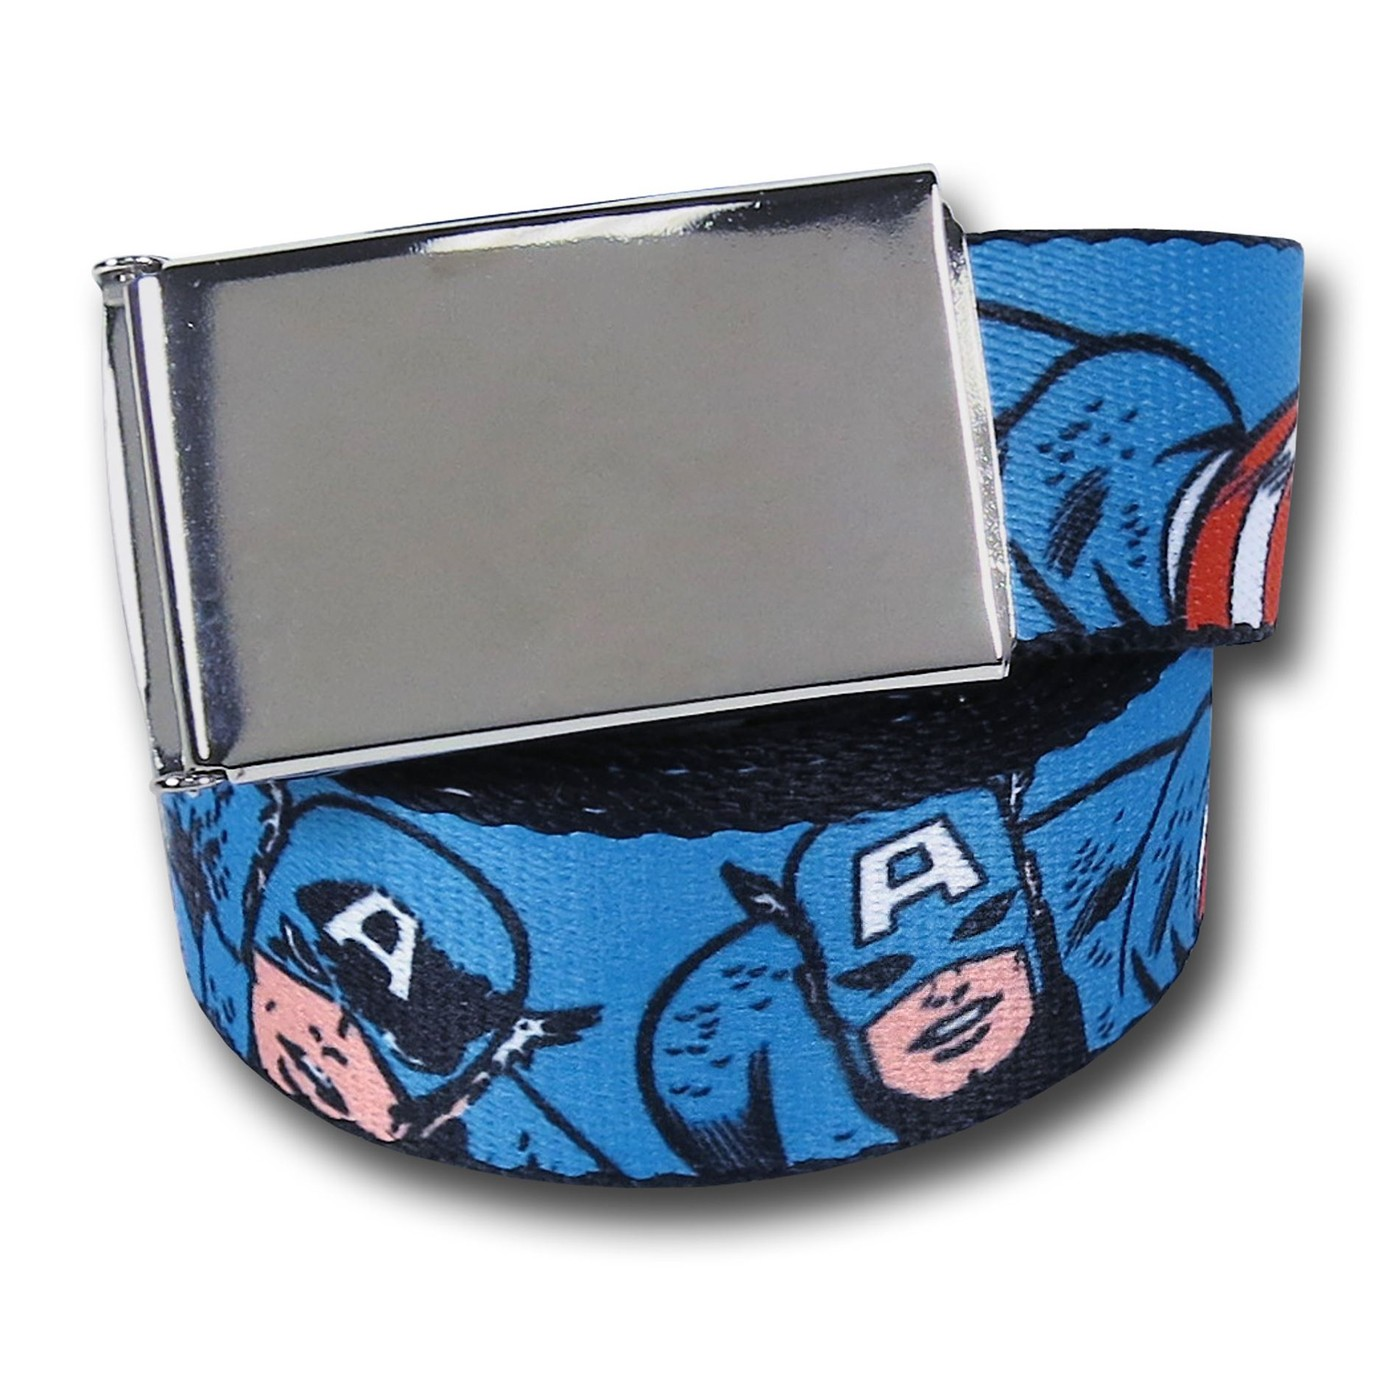 Captain America Retro Images Blue Web Belt